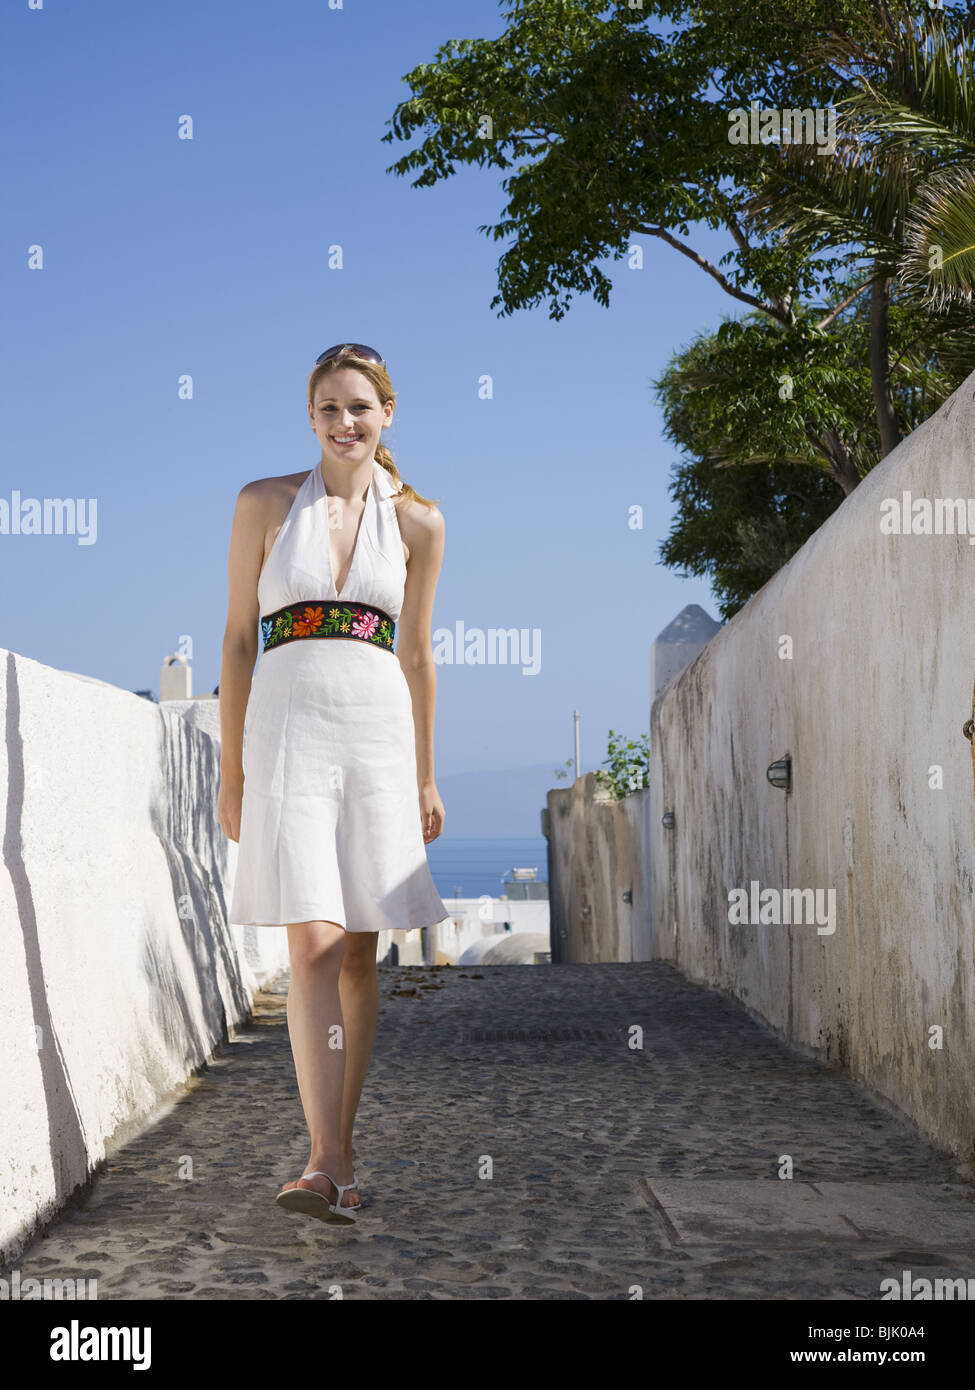 Woman leaning on wall and smiling outdoors - Stock Image